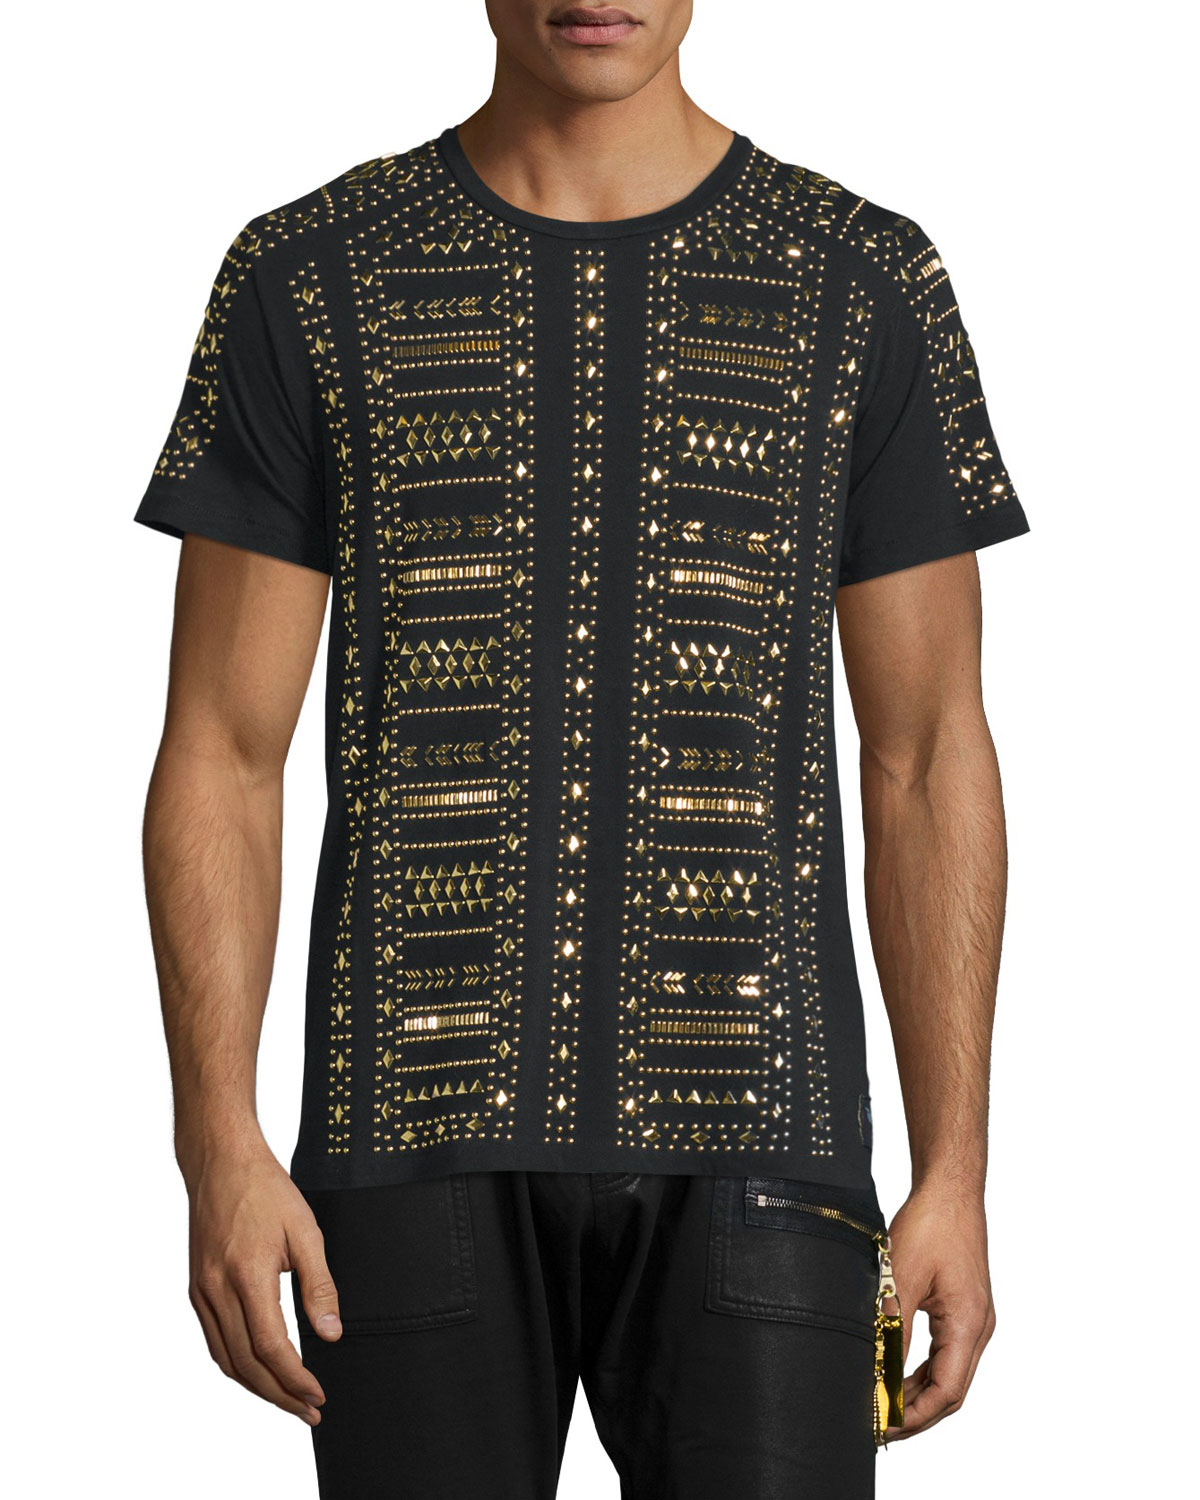 Robin S Jean Gold Metal Studded Short Sleeve T Shirt In